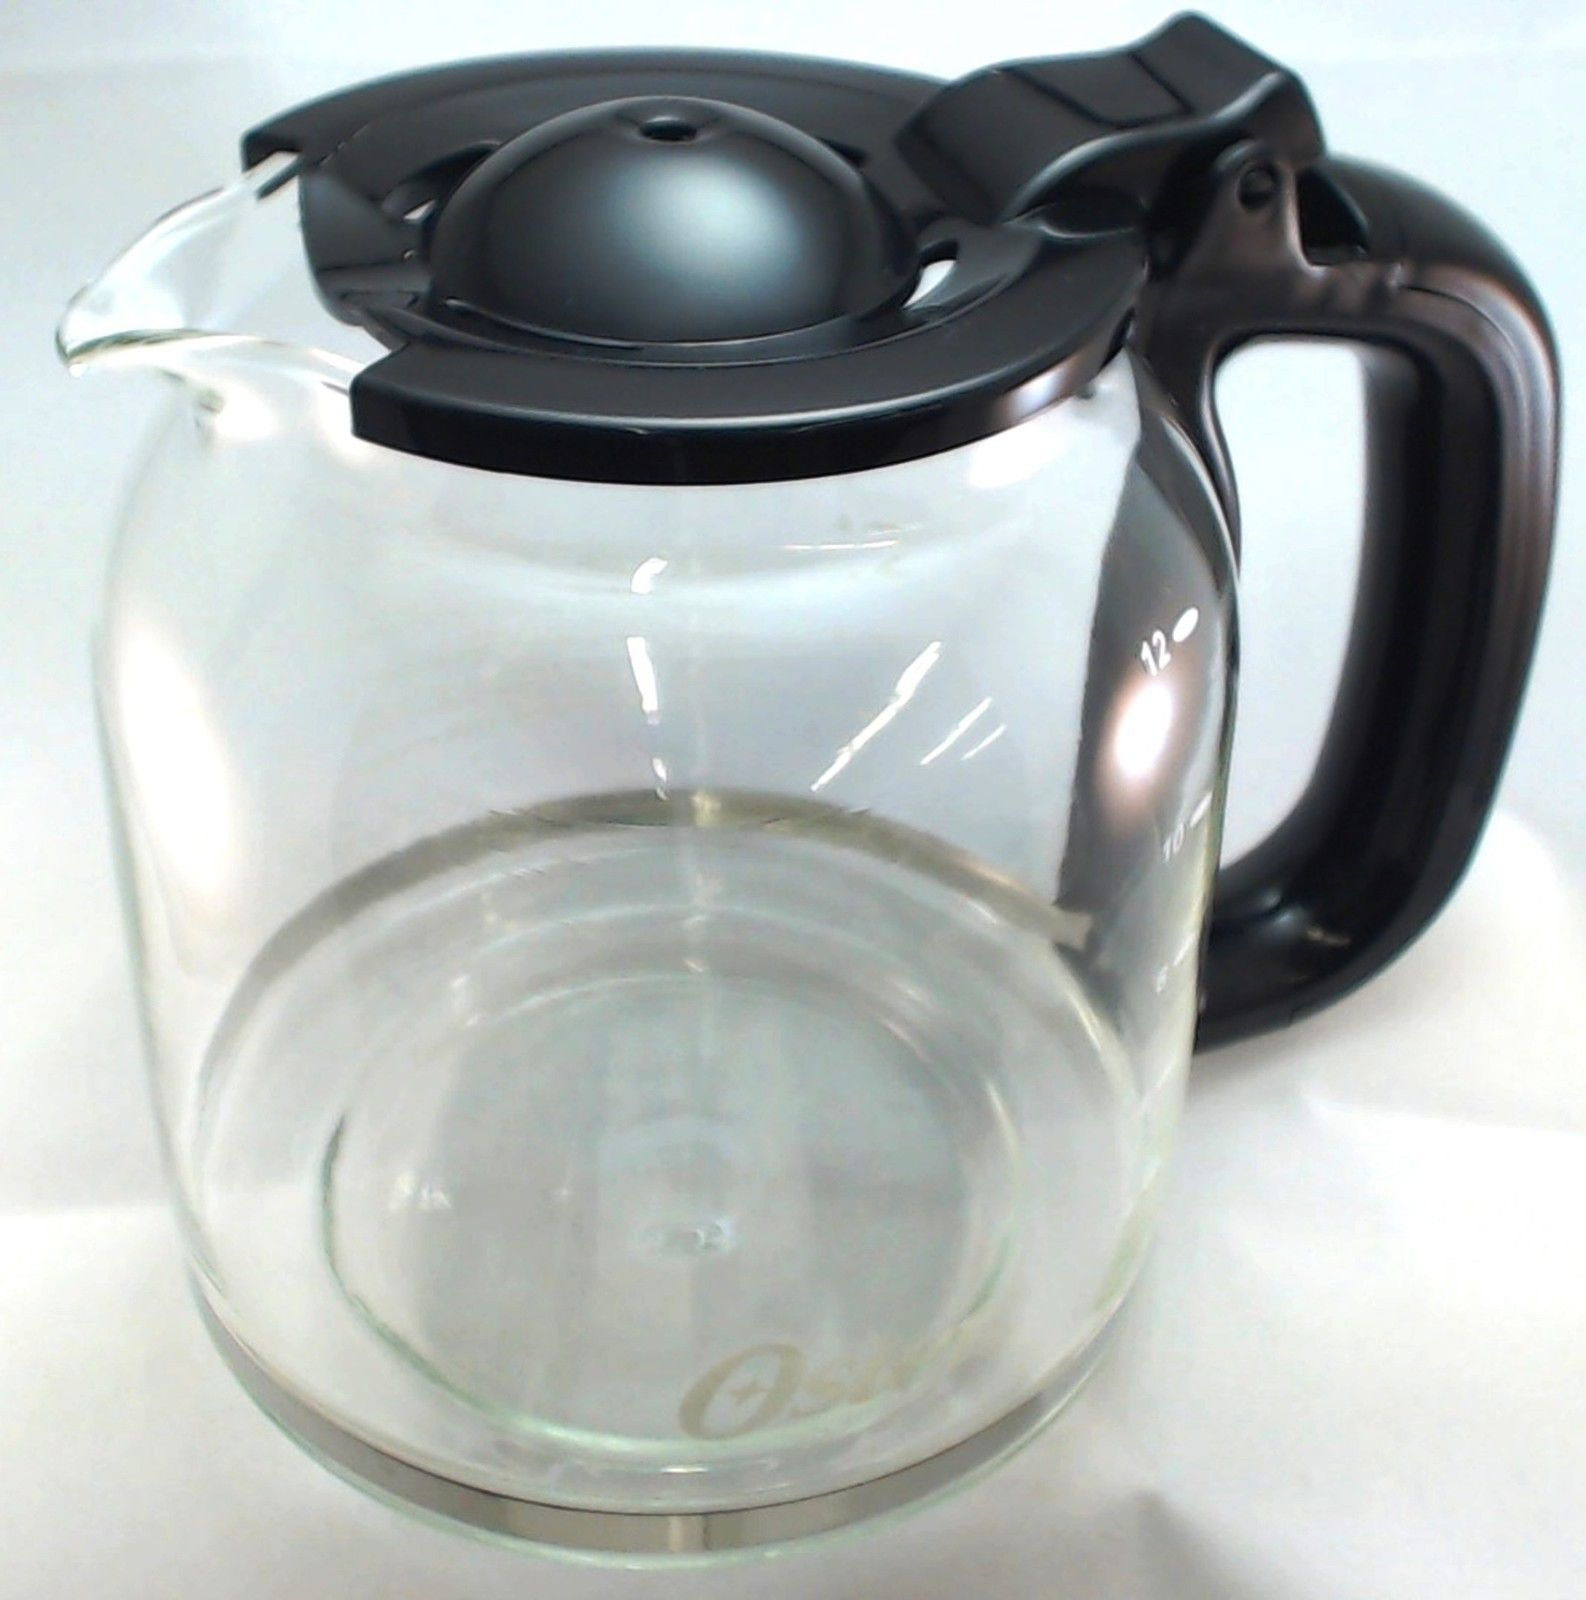 Oster Glass Carafe, Black, for Model: BVST-JBXSS41, 154448-000-000 eBay